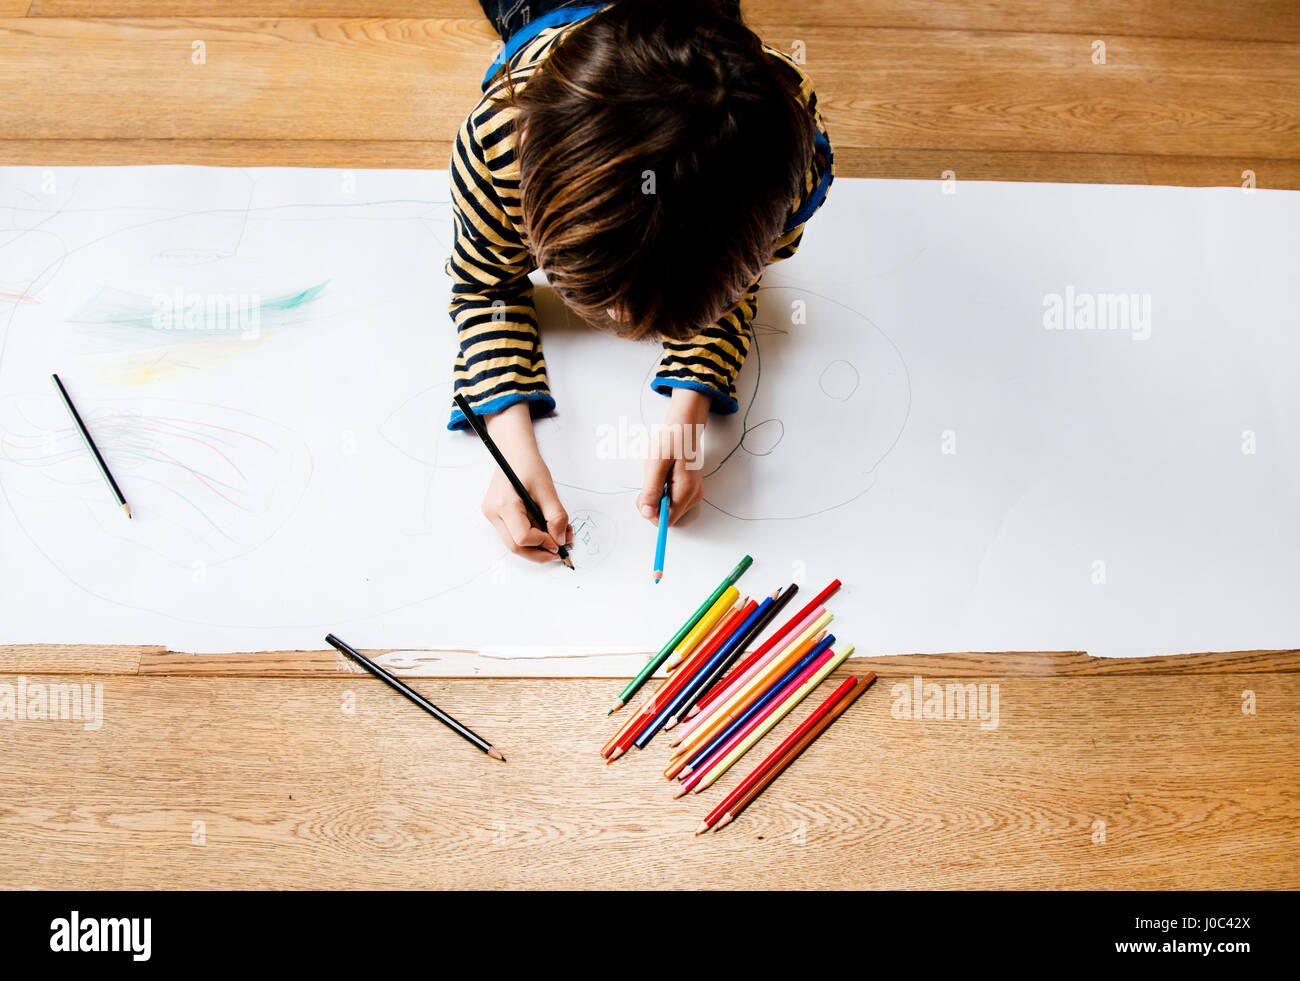 Overhead view of boy lying on floor drawing on long paper - Stock Image